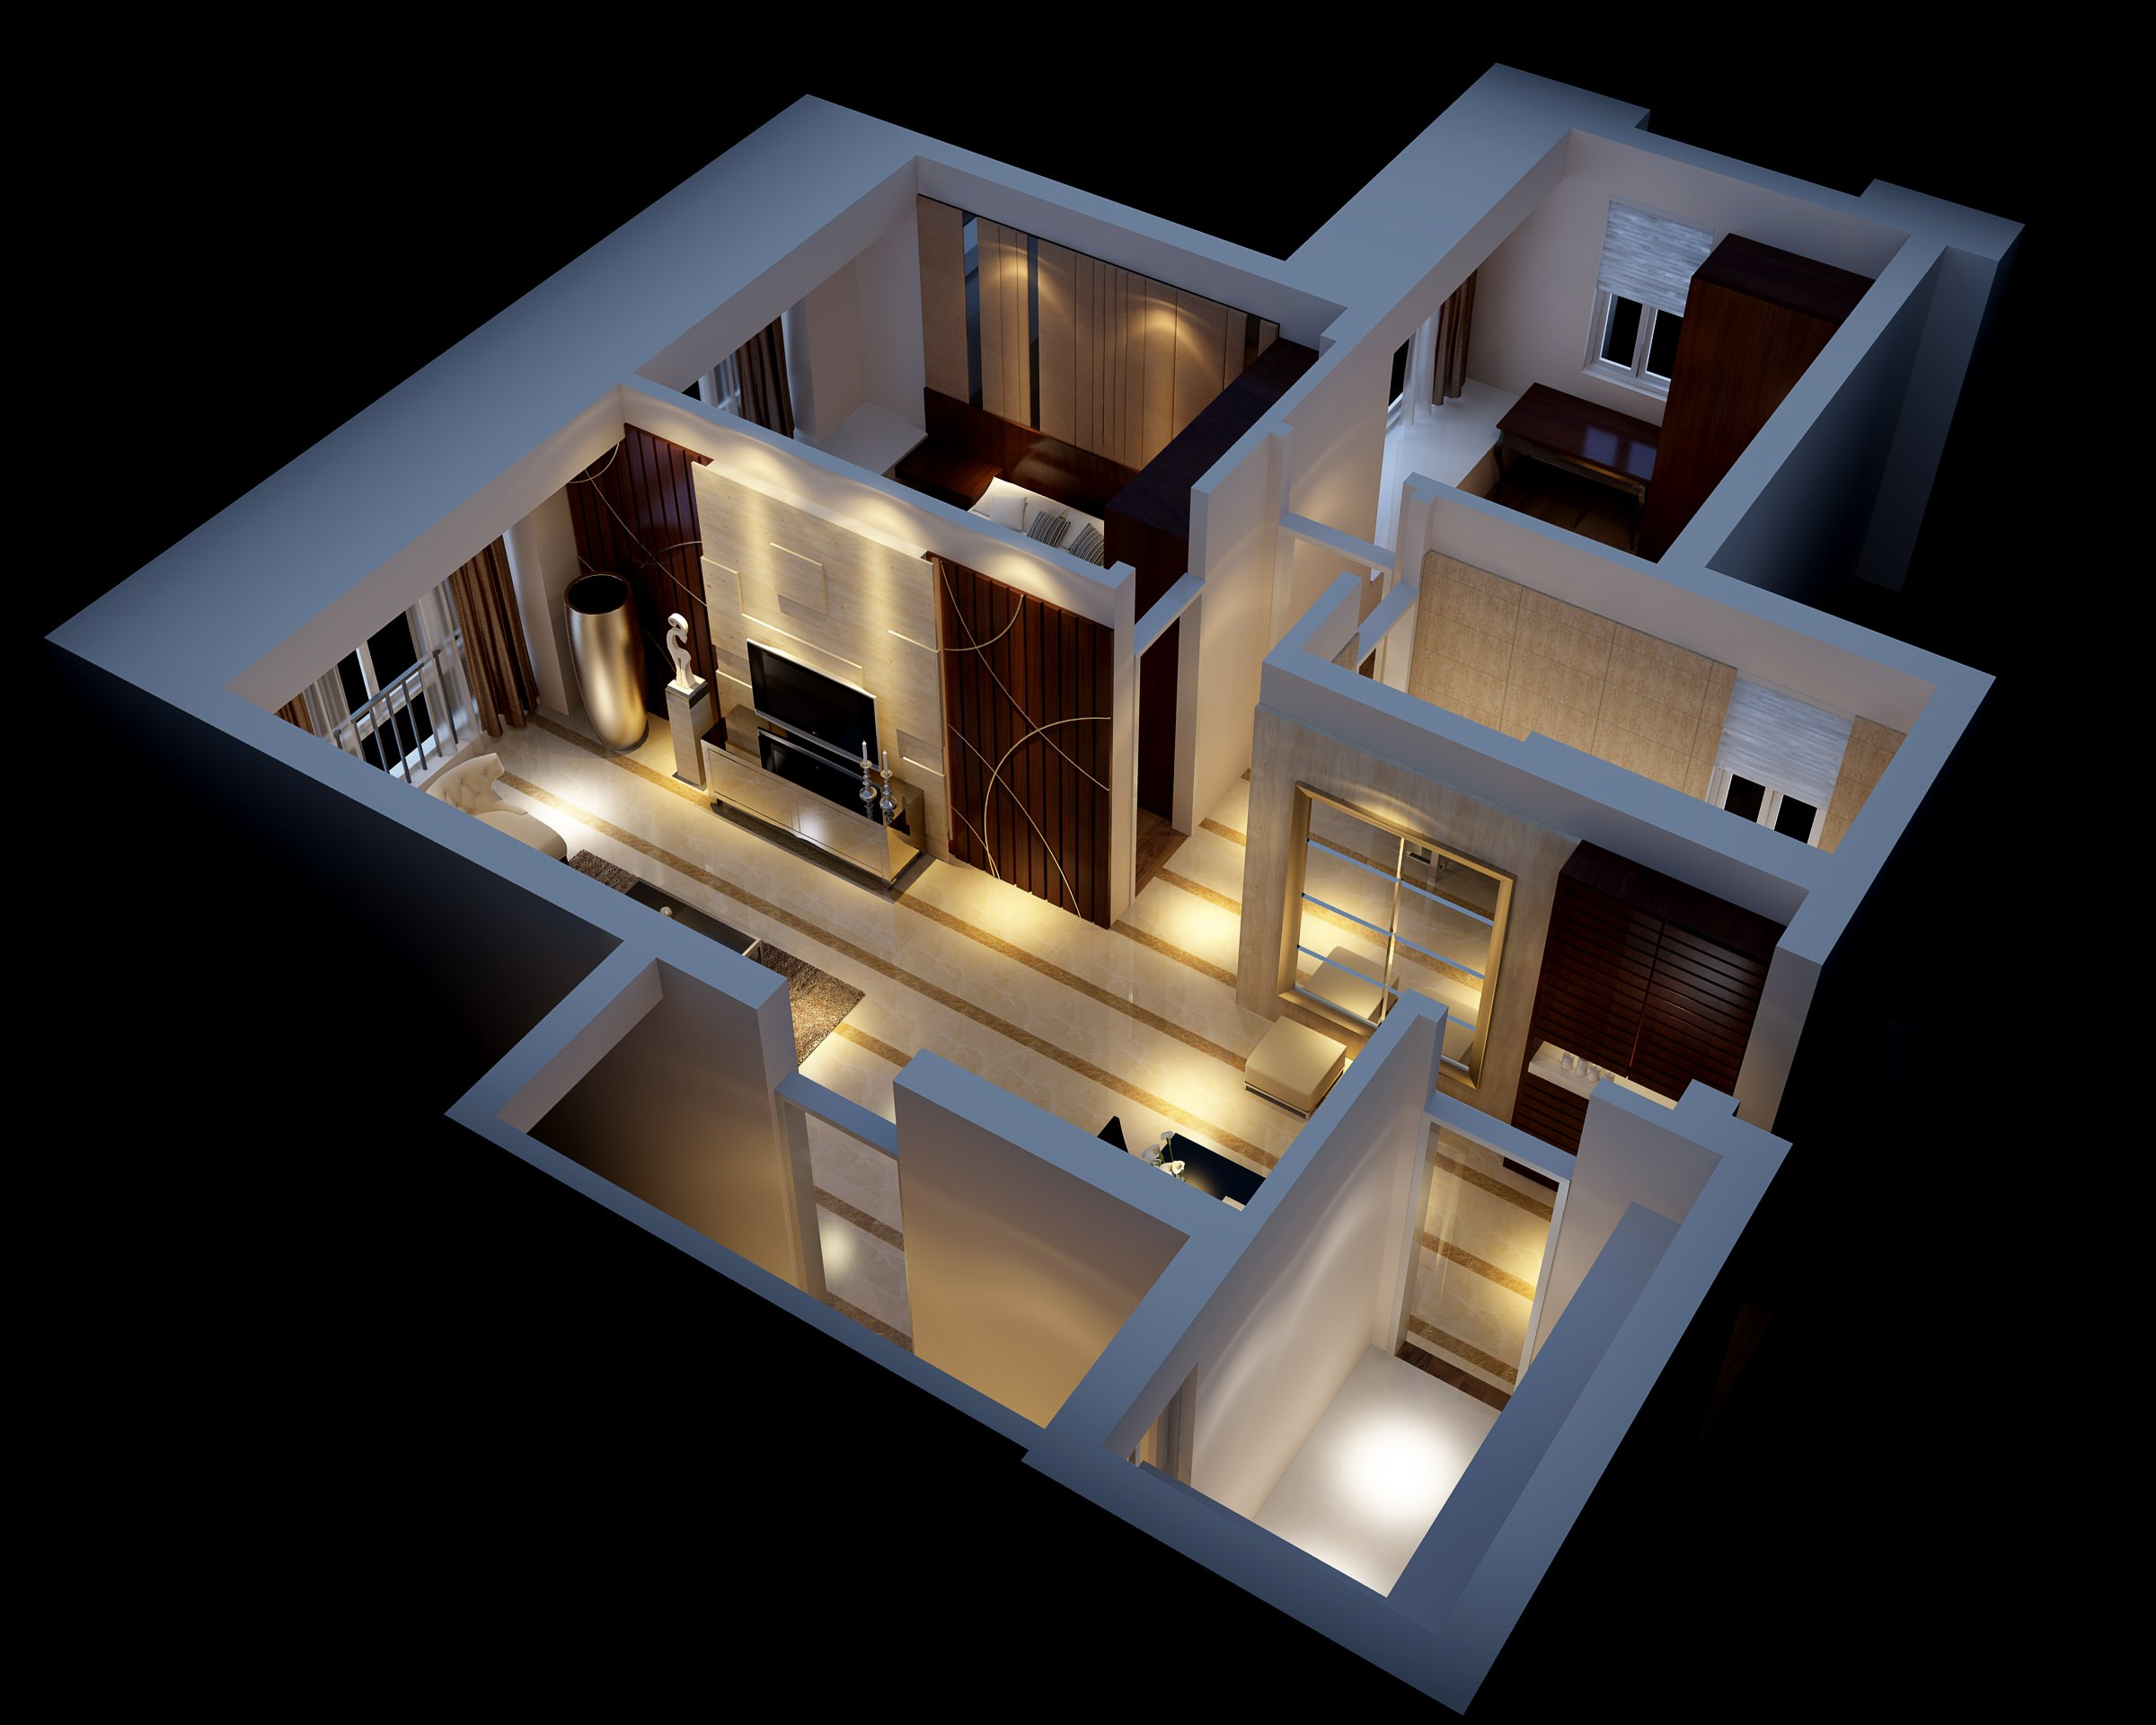 Modern house interior fully furnished 3d model max for Modern mansion interior